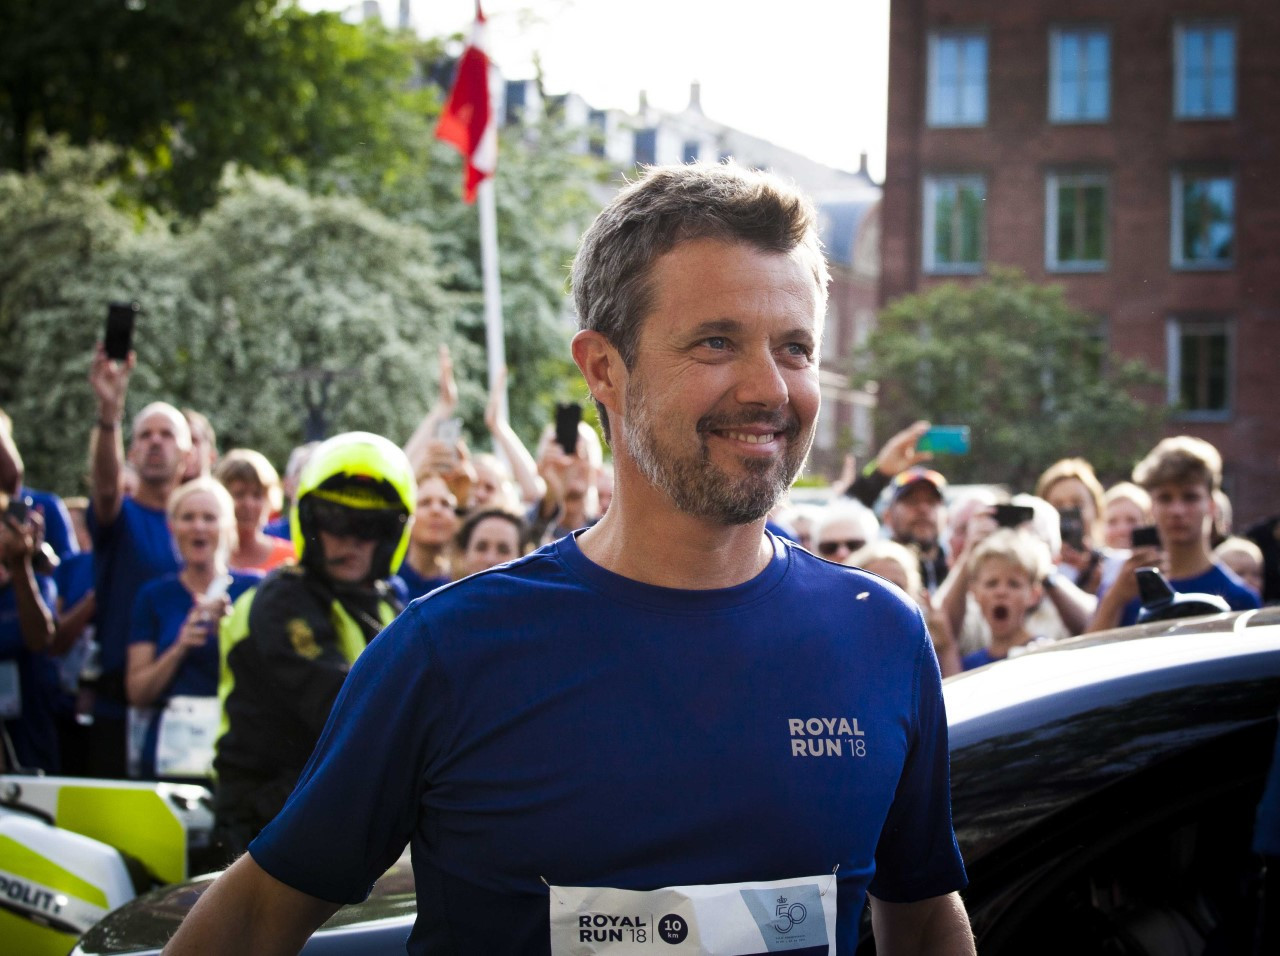 Crown Prince Frederik of Denmark will take part in the relay event on the day of the IAAF World Cross Country Championships at Aarhus in Denmark on Saturday ©Aarhus 2019